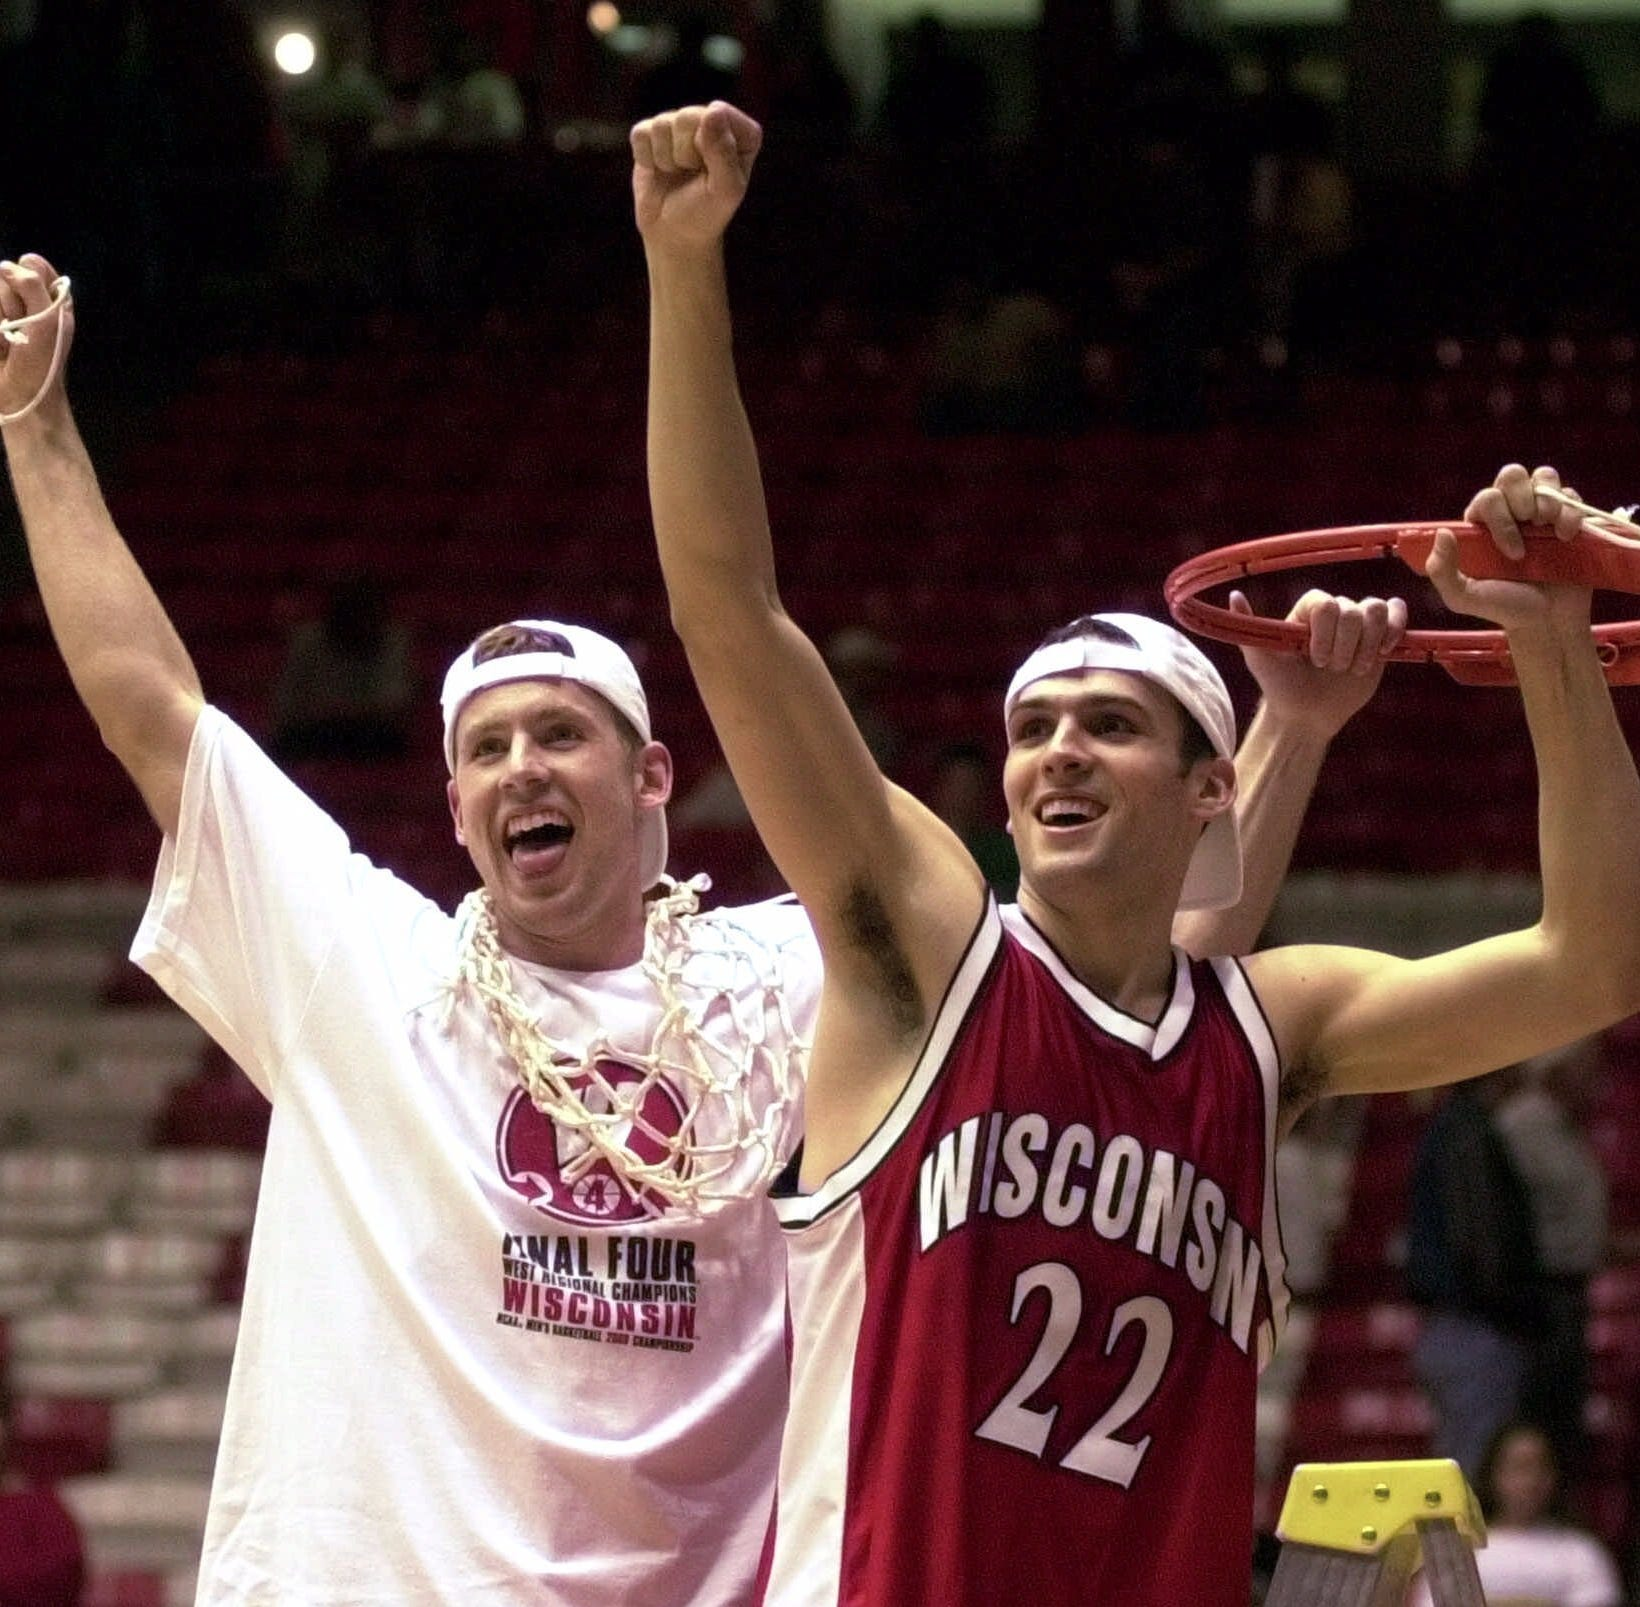 How did a team with zero all-conference players make the Final Four? An oral history of the 1999-2000 Wisconsin Badgers